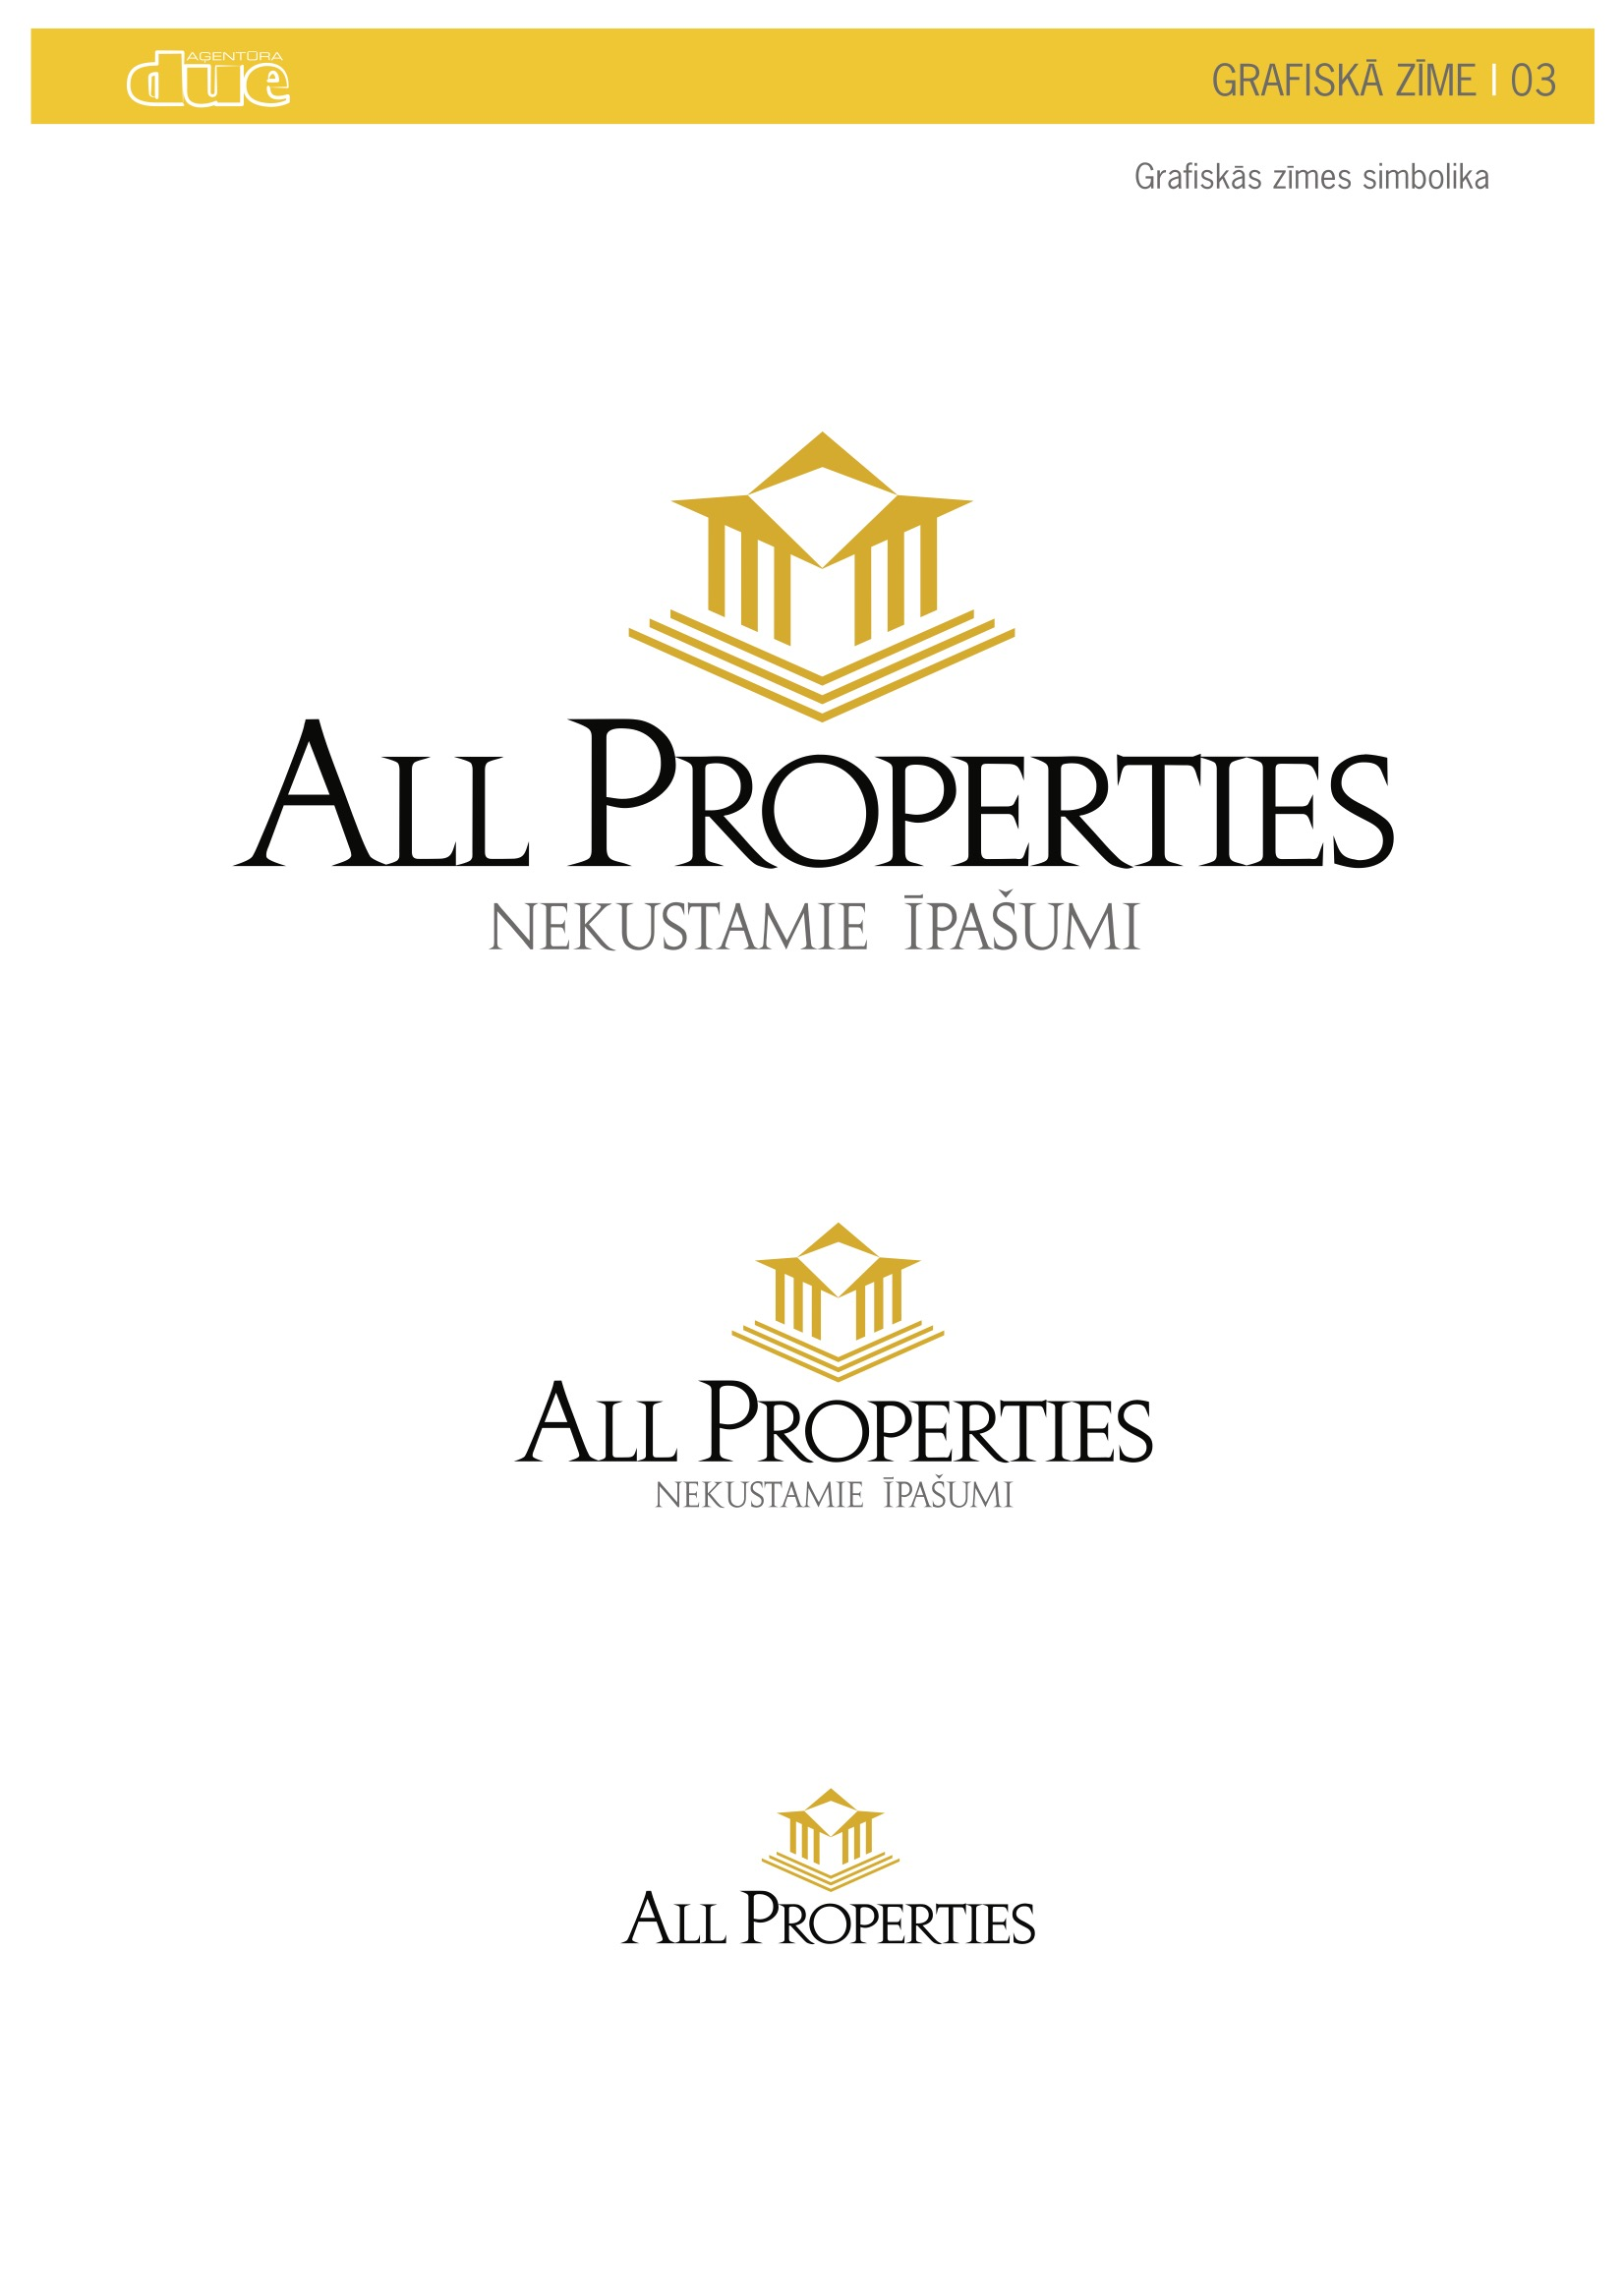 ALL_Properties_Stils 4